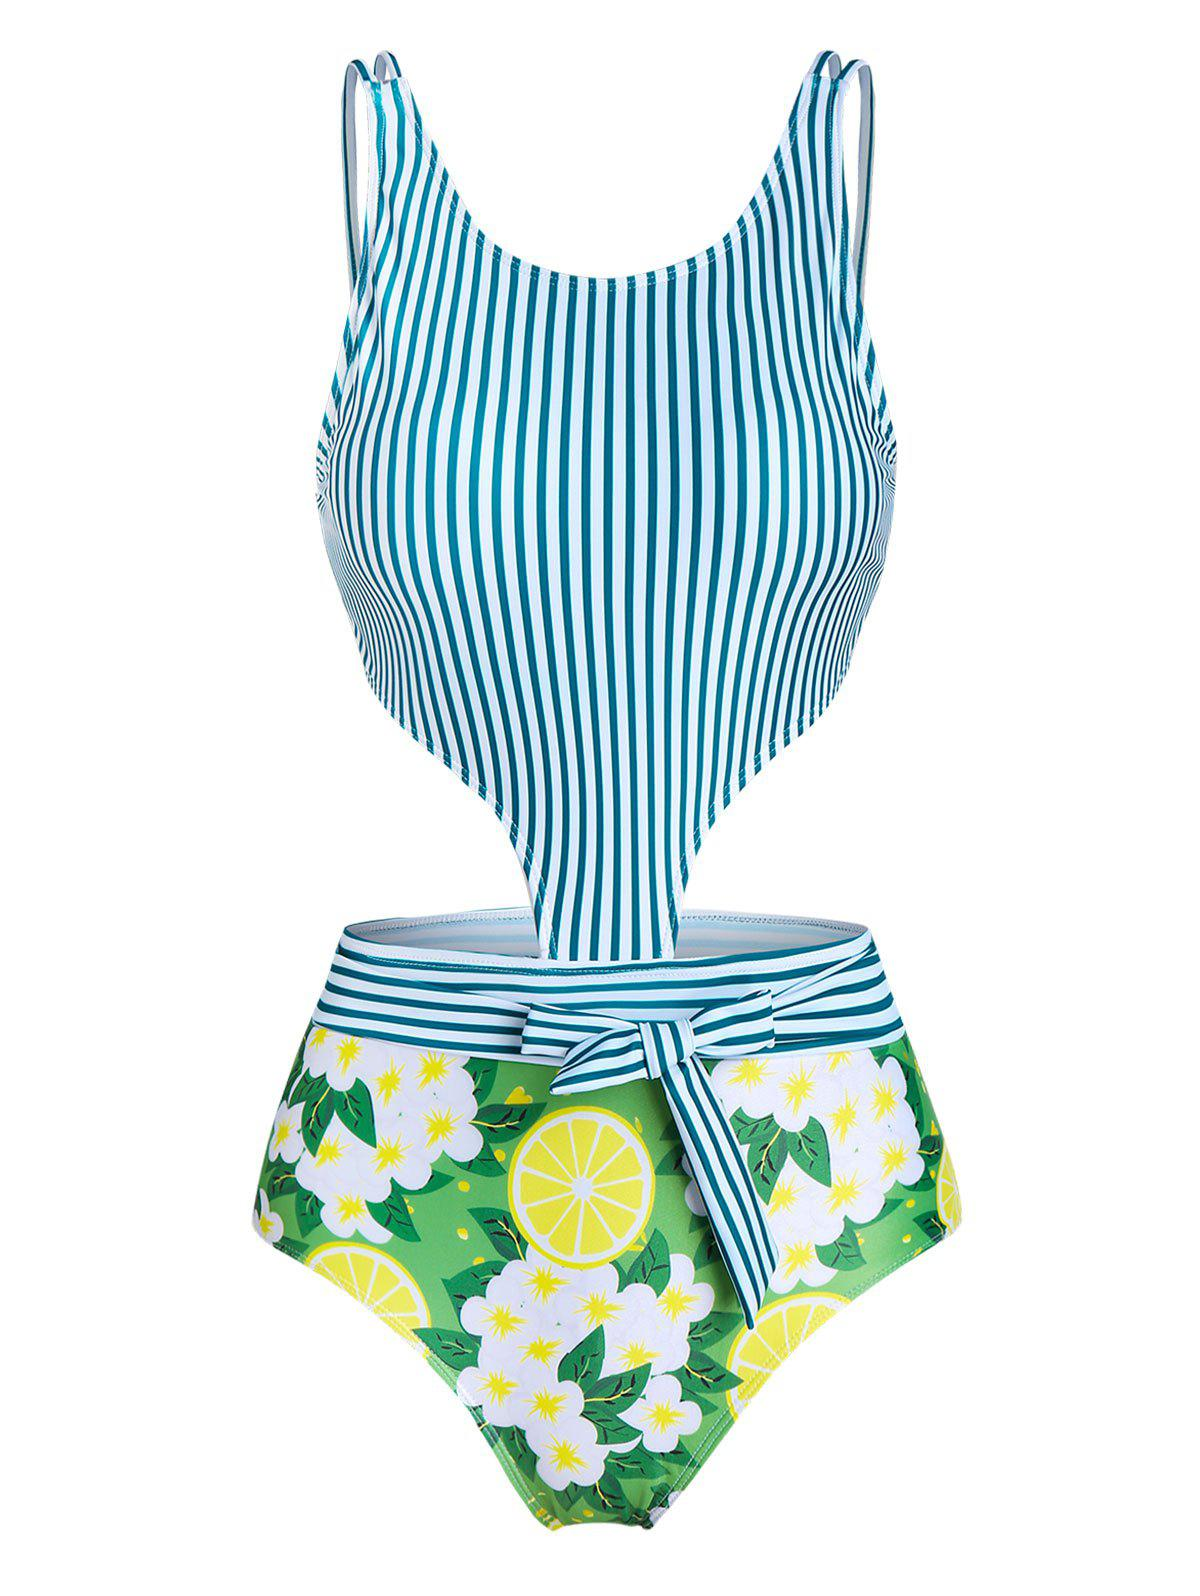 Lemon Striped Cut Out Padded One-piece Swimsuit - CLOVER GREEN L